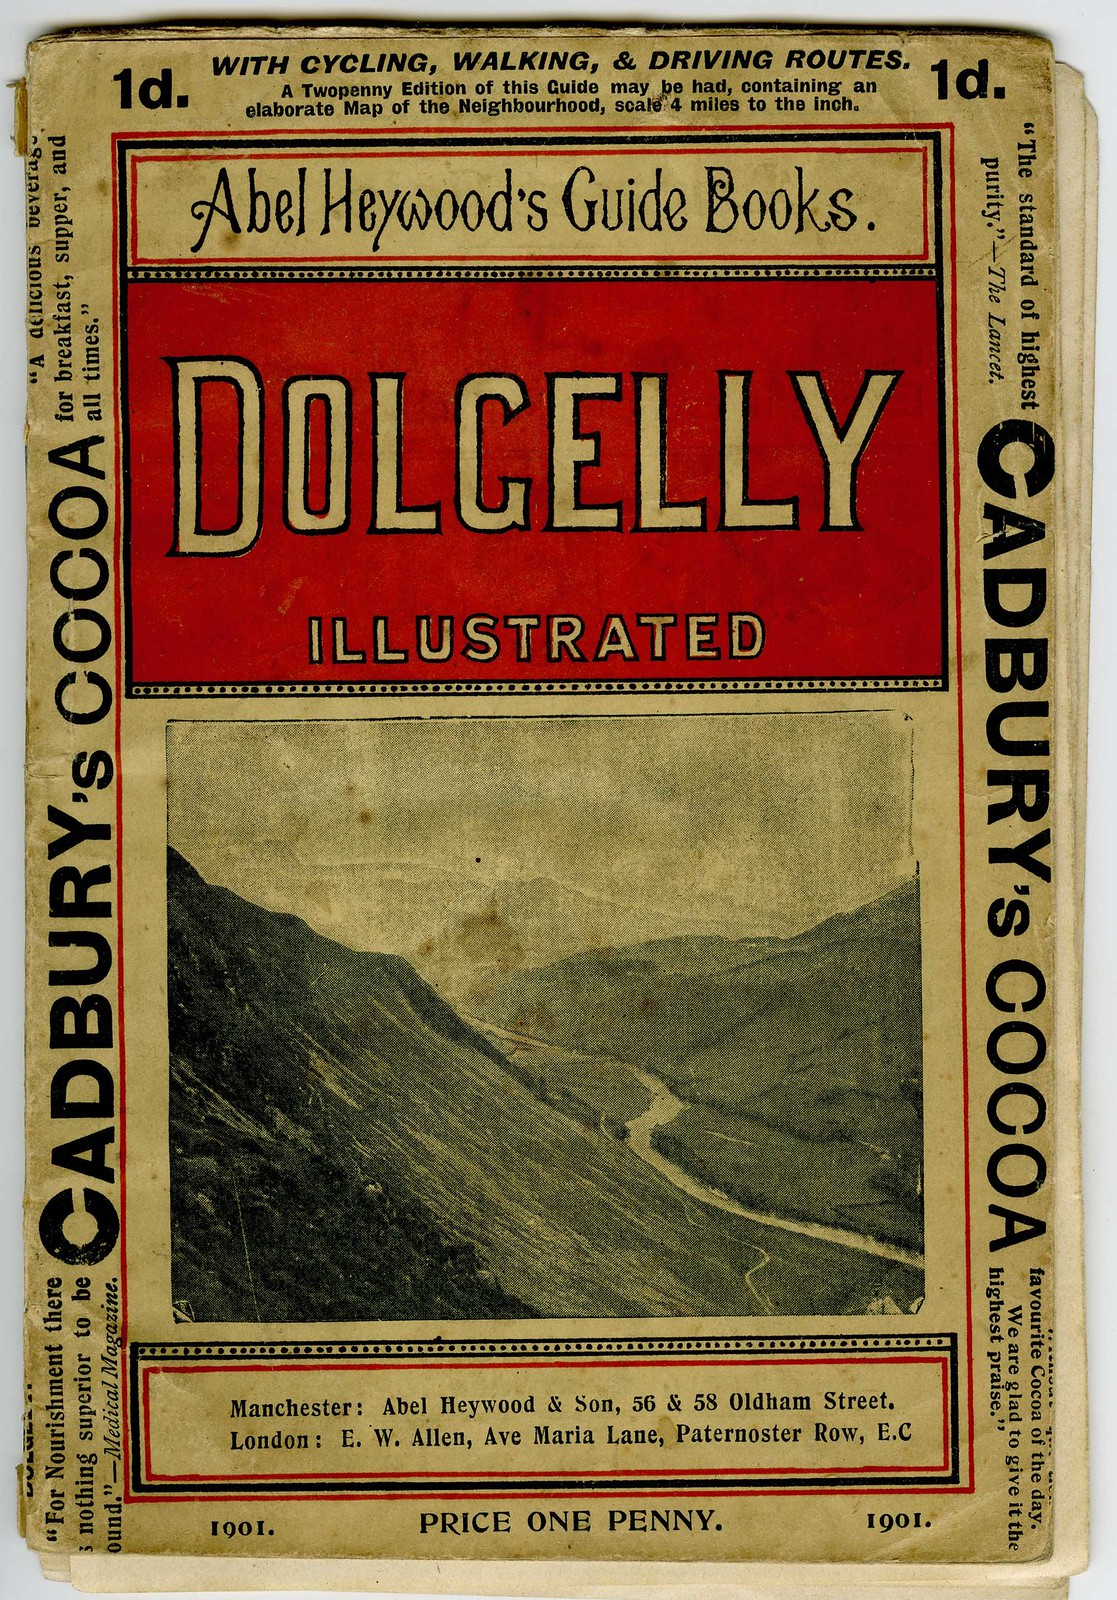 Abel Heywood's Guide Book - Dolgelly Illustrated from 1901